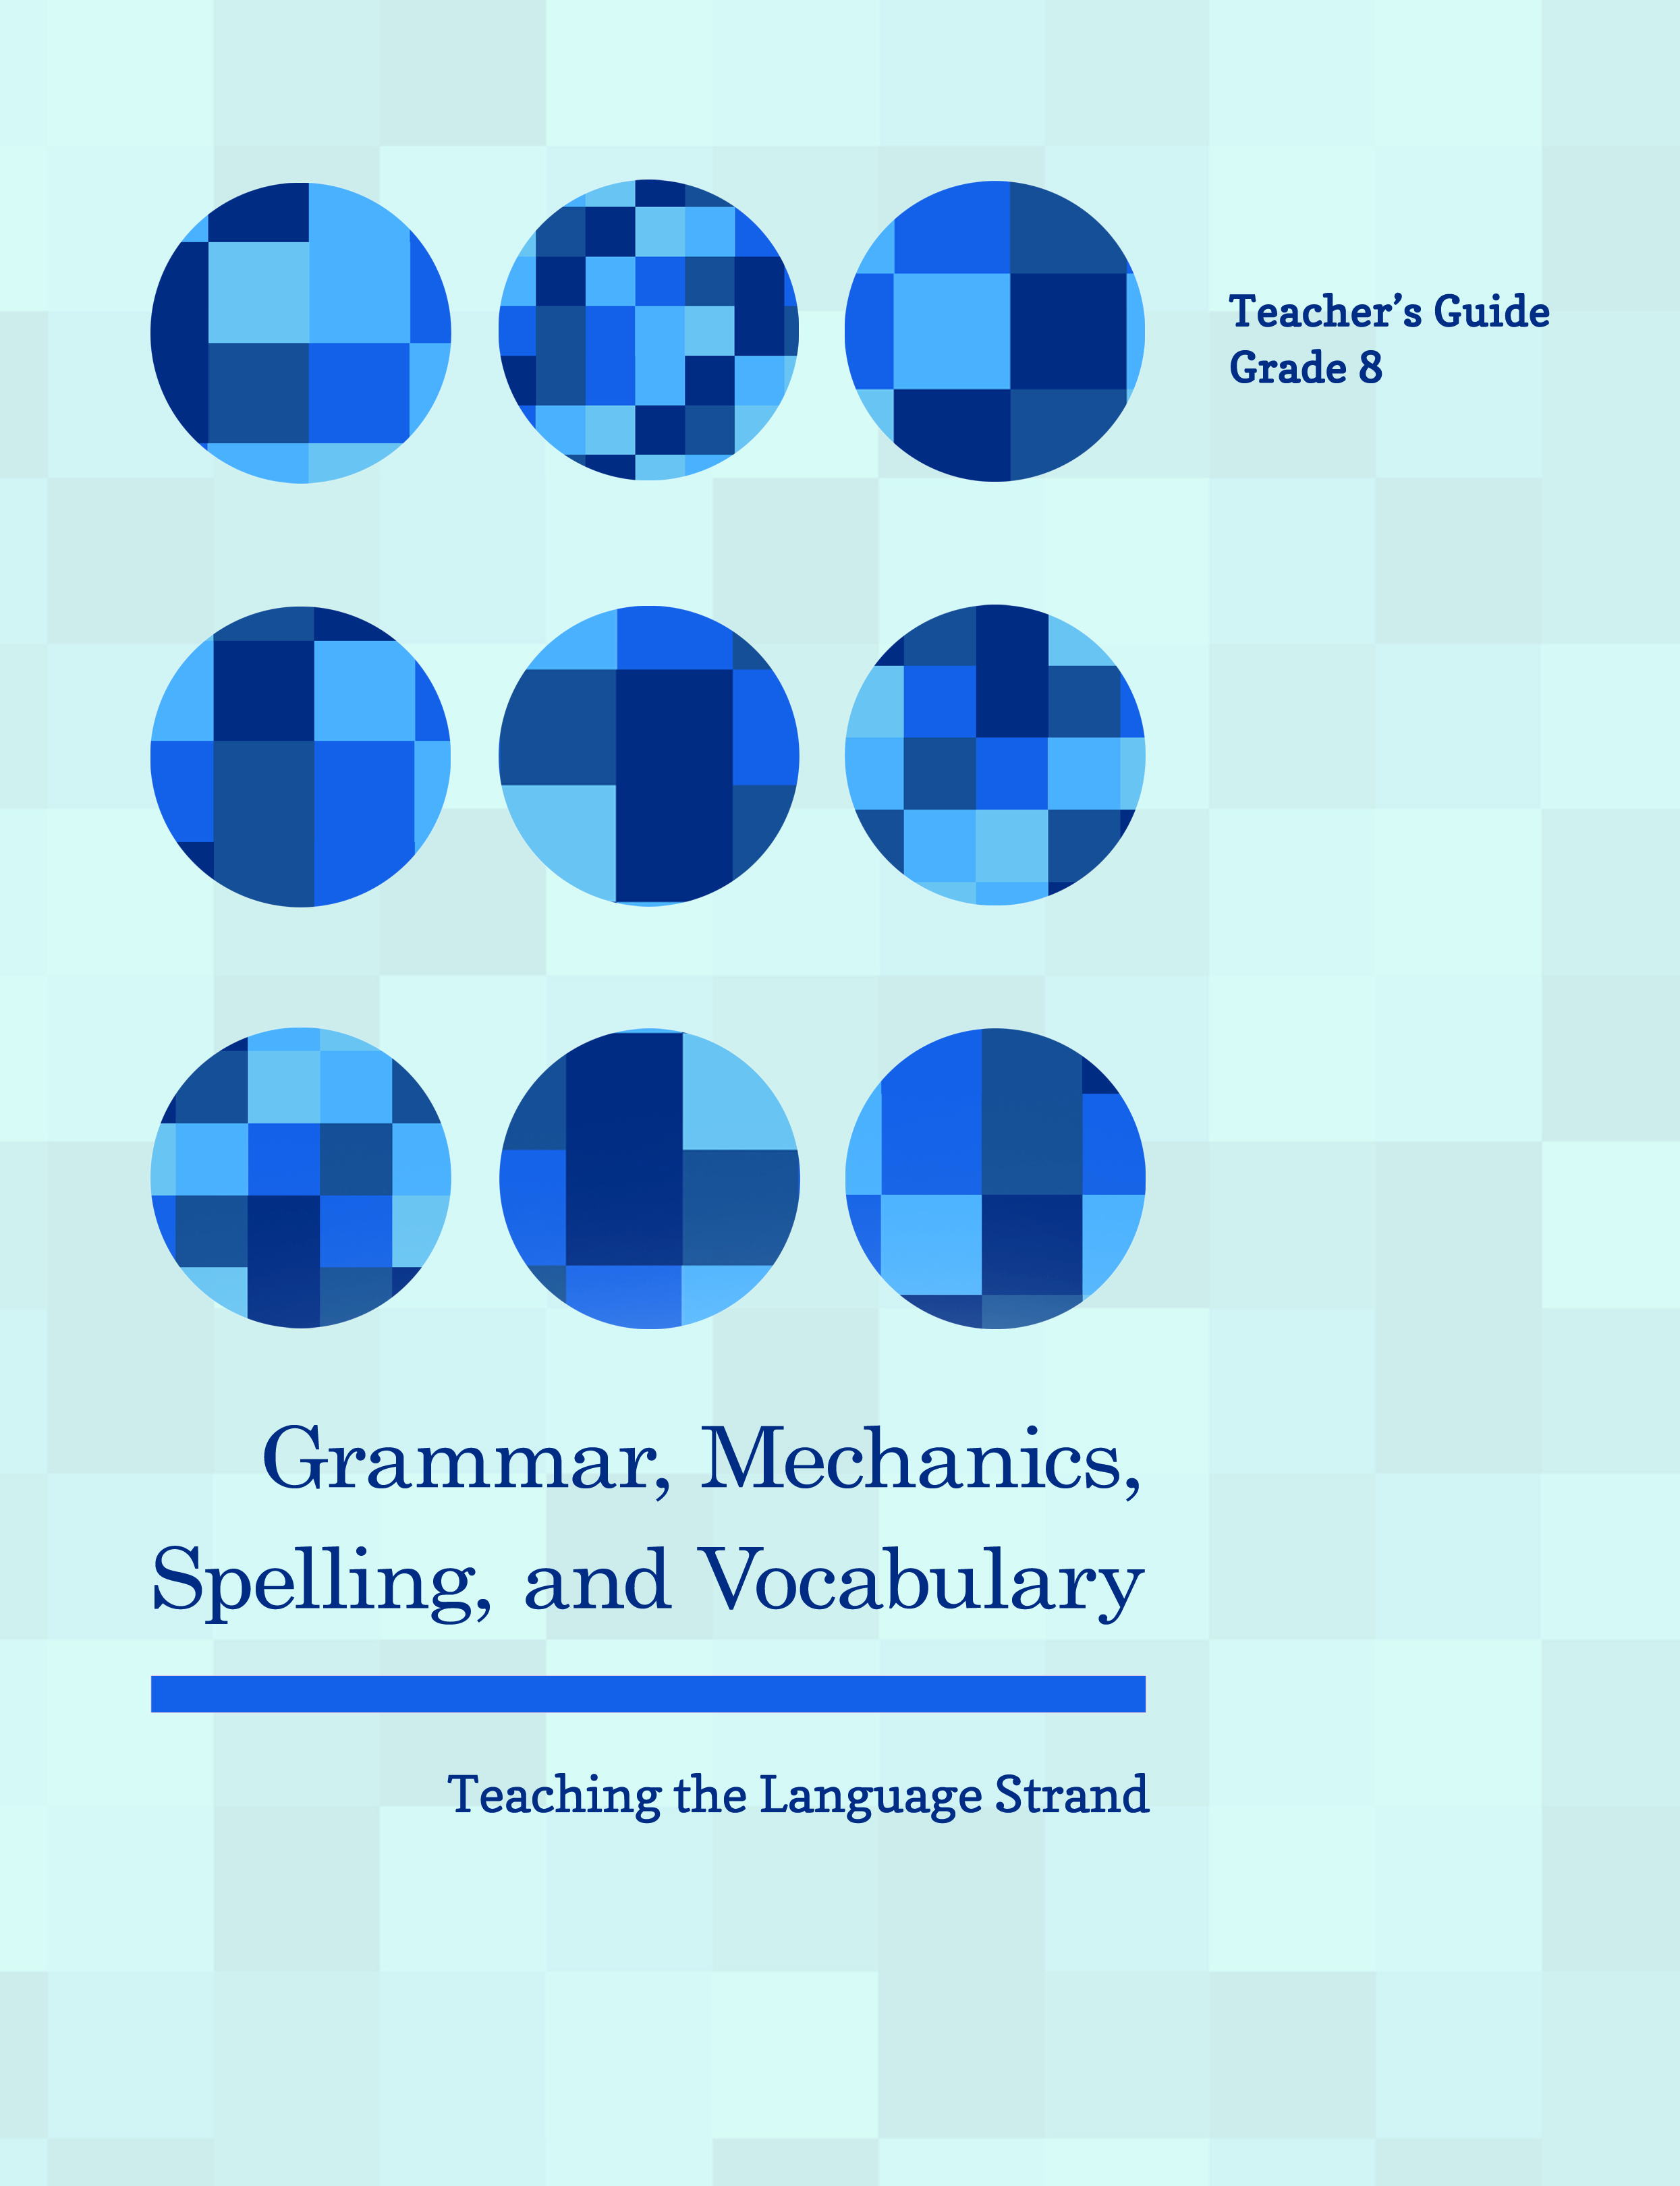 Pennington Publishing's Grammar, Usage, Mechanics, Spelling, and Vocabulary (Teaching the Language Strand) Grades 4-8 Programs